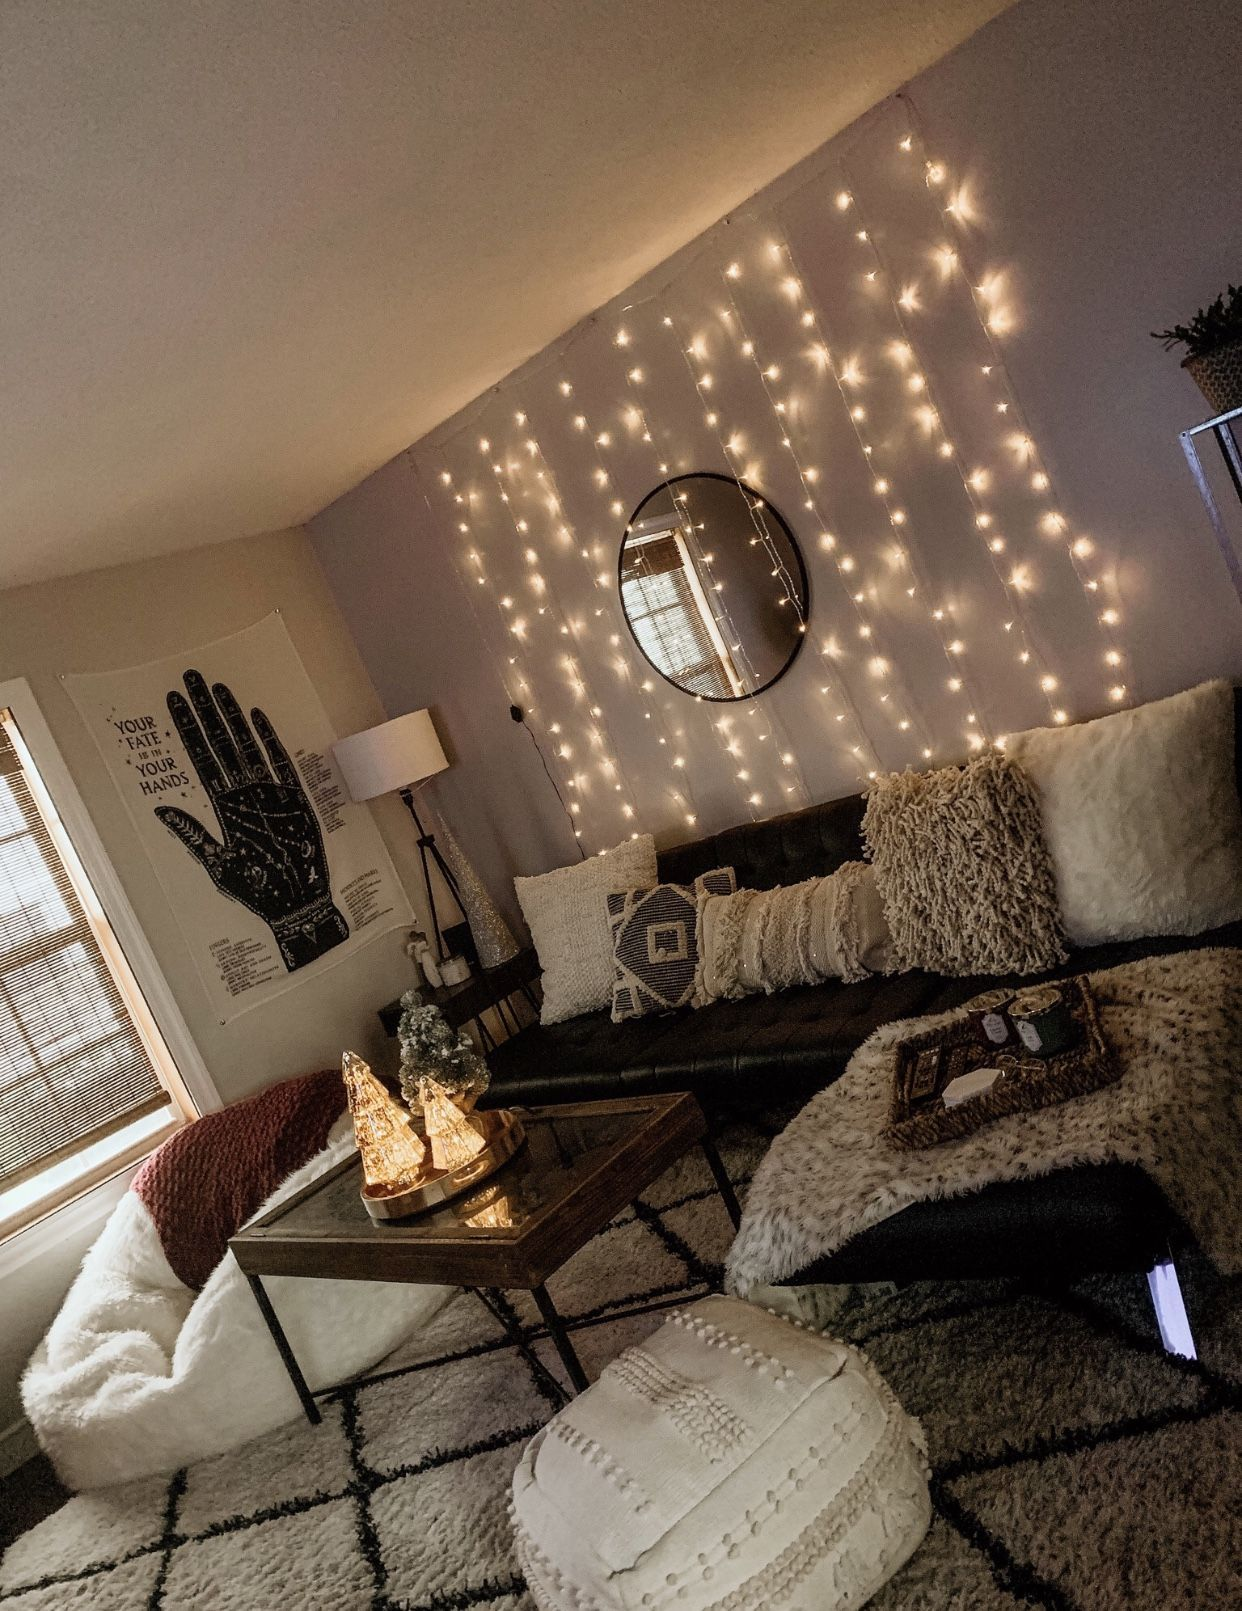 Simple Holiday Decorating With Lights Apartmentsmanhattanexterior Living Room Decor Apartment College Apartment Decor First Apartment Decorating